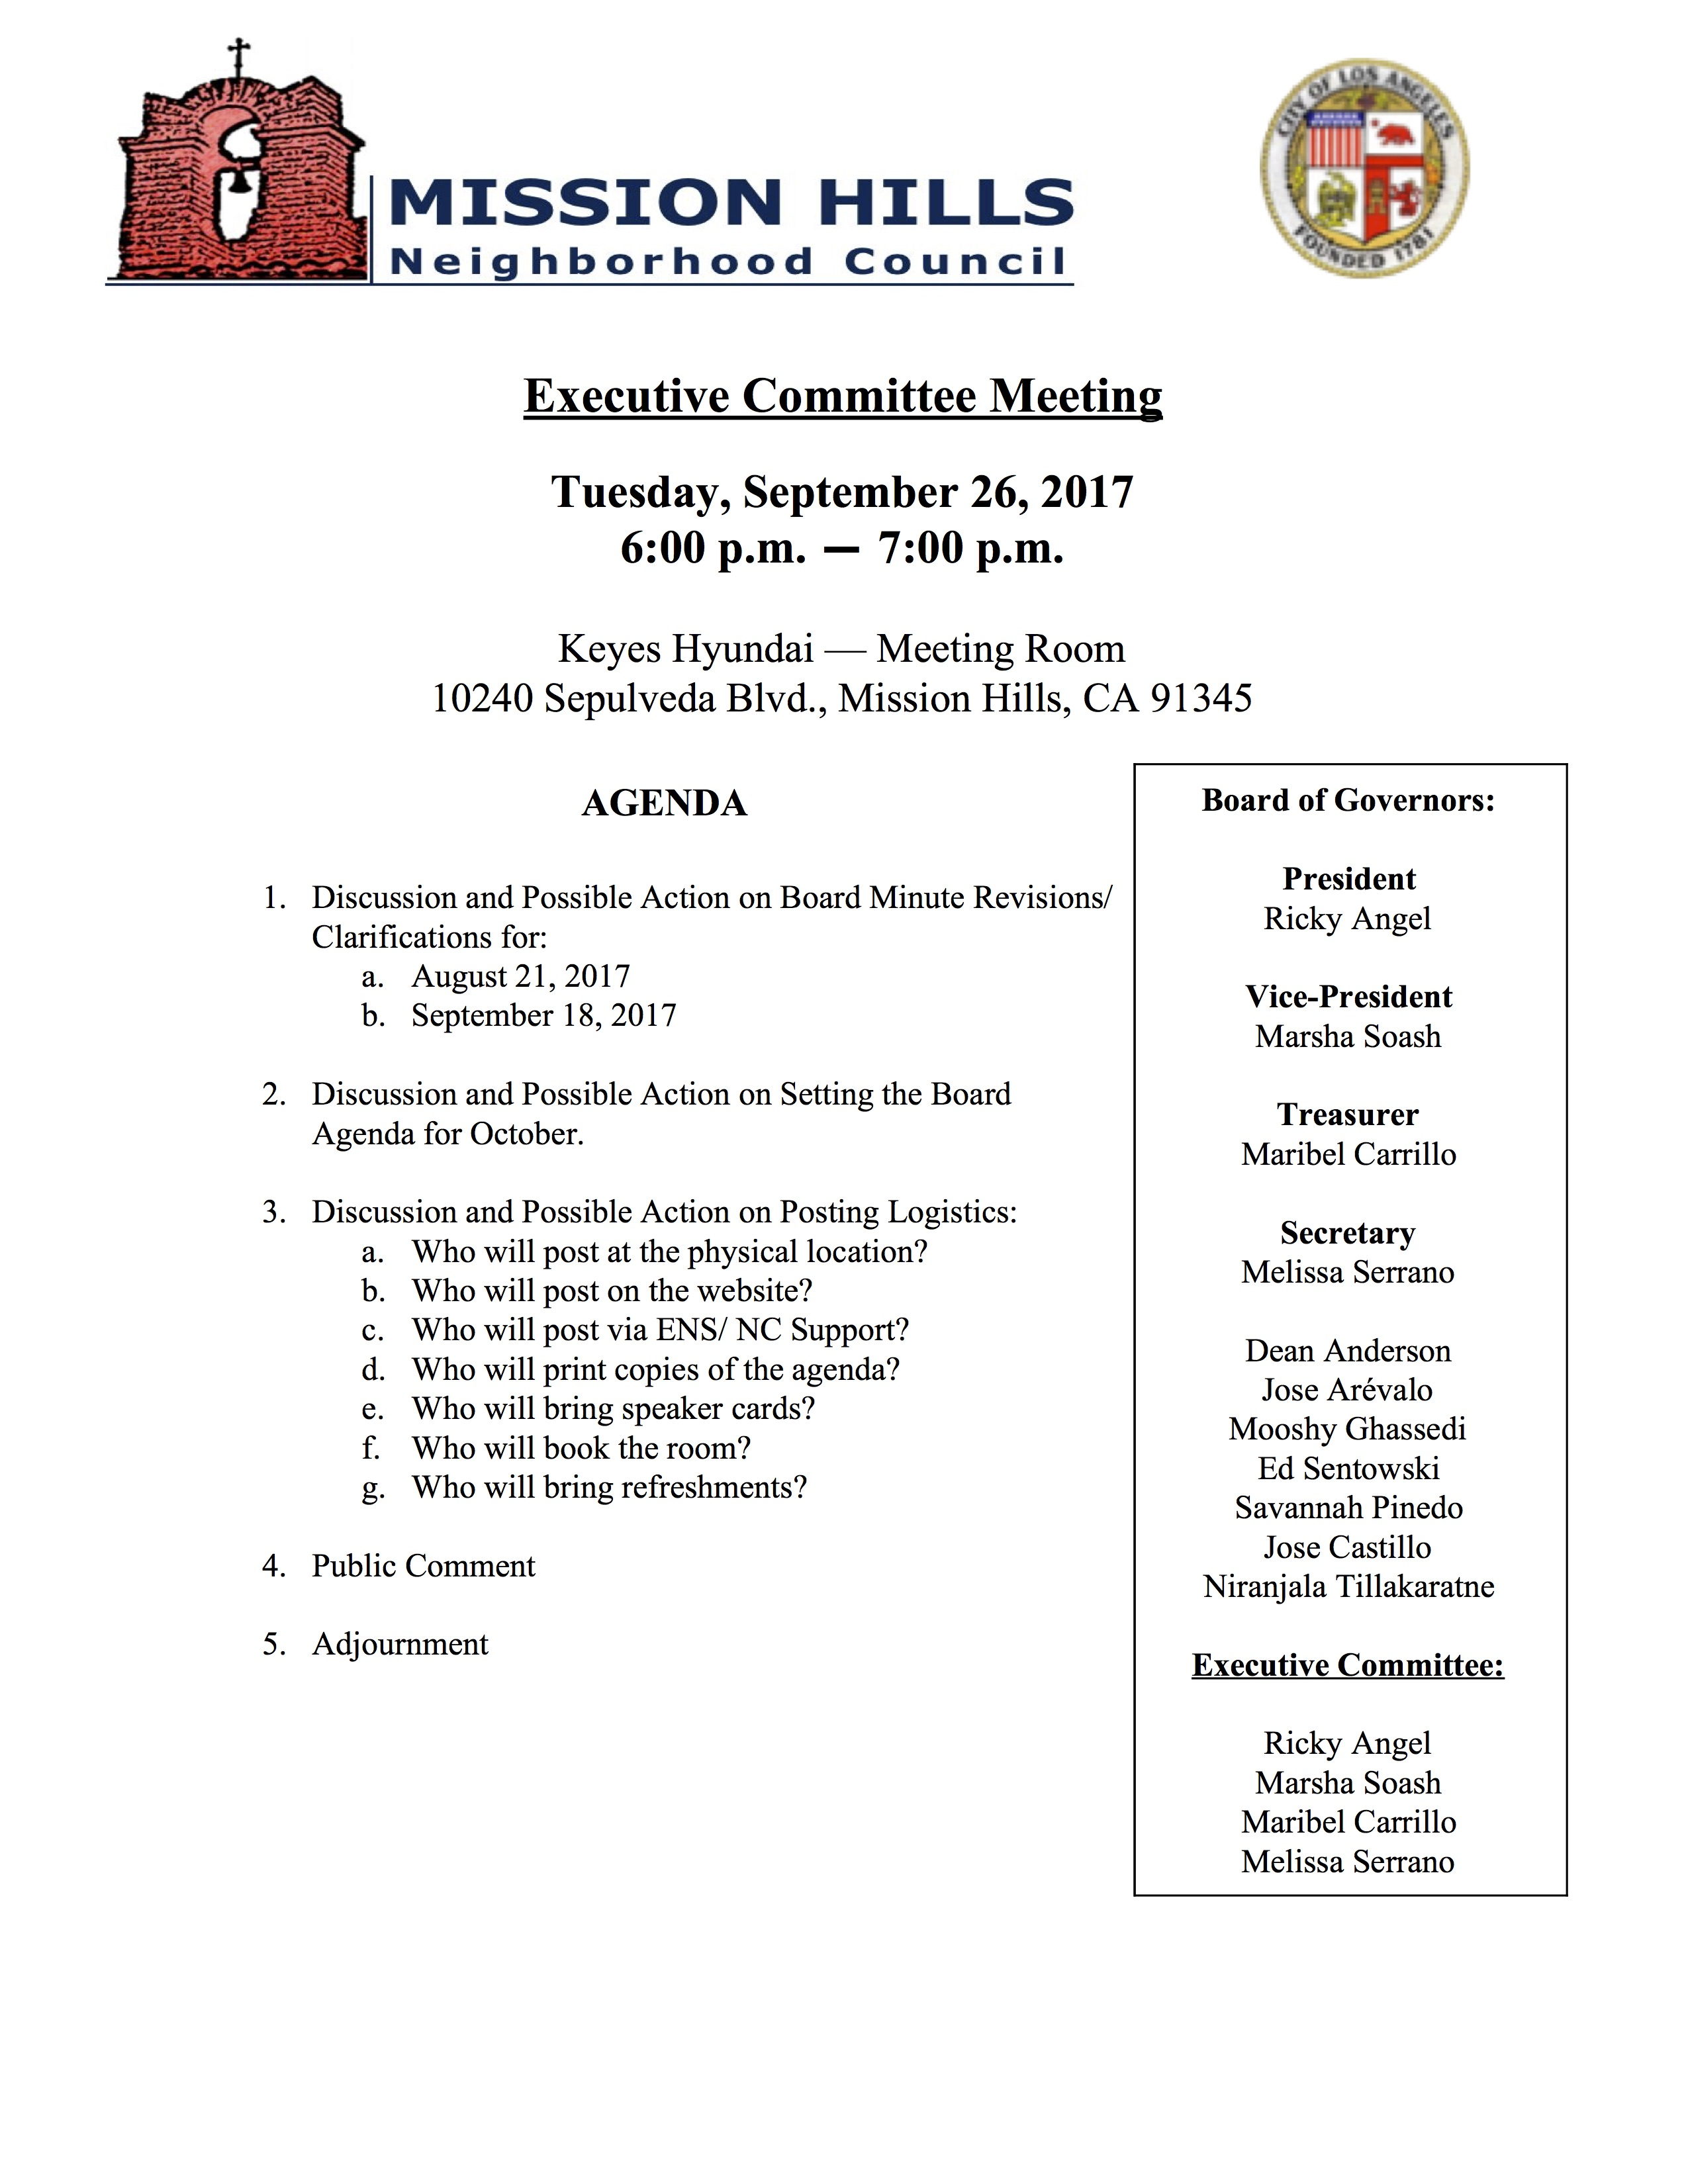 Executive Committee Agenda September 26, 2017